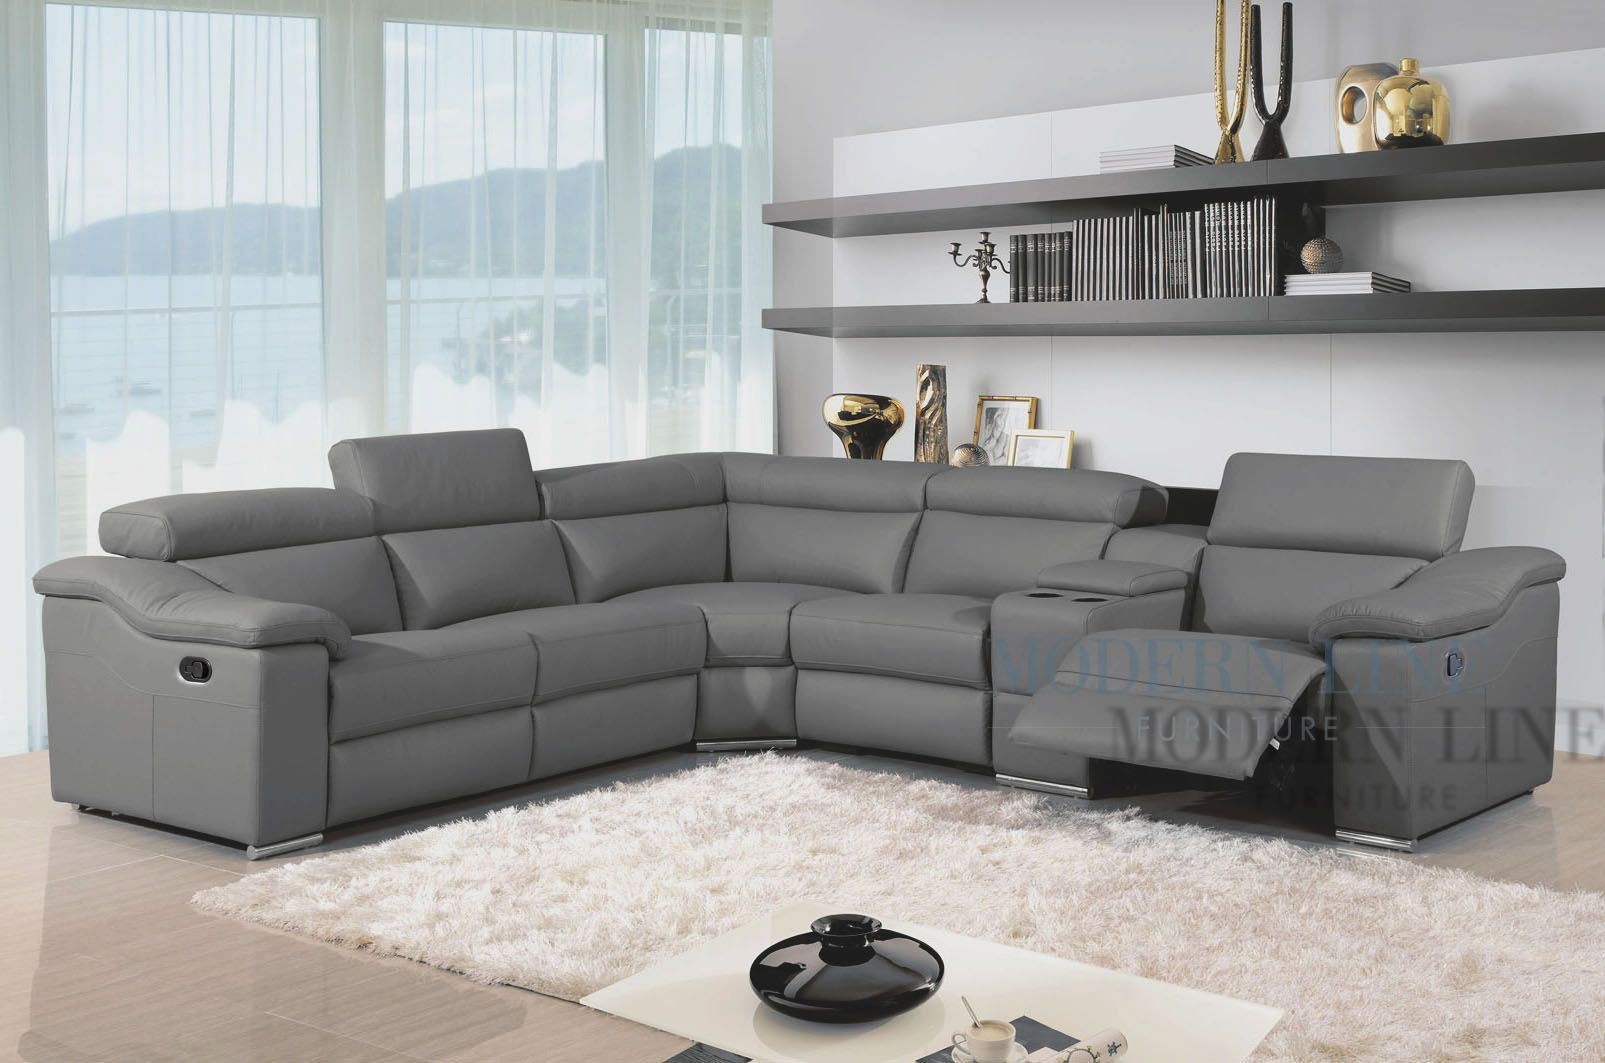 awesome Great Charcoal Grey Sectional Sofa 29 About Remodel Home Design Ideas with Charcoal Grey Sectional & awesome Great Charcoal Grey Sectional Sofa 29 About Remodel Home ... islam-shia.org